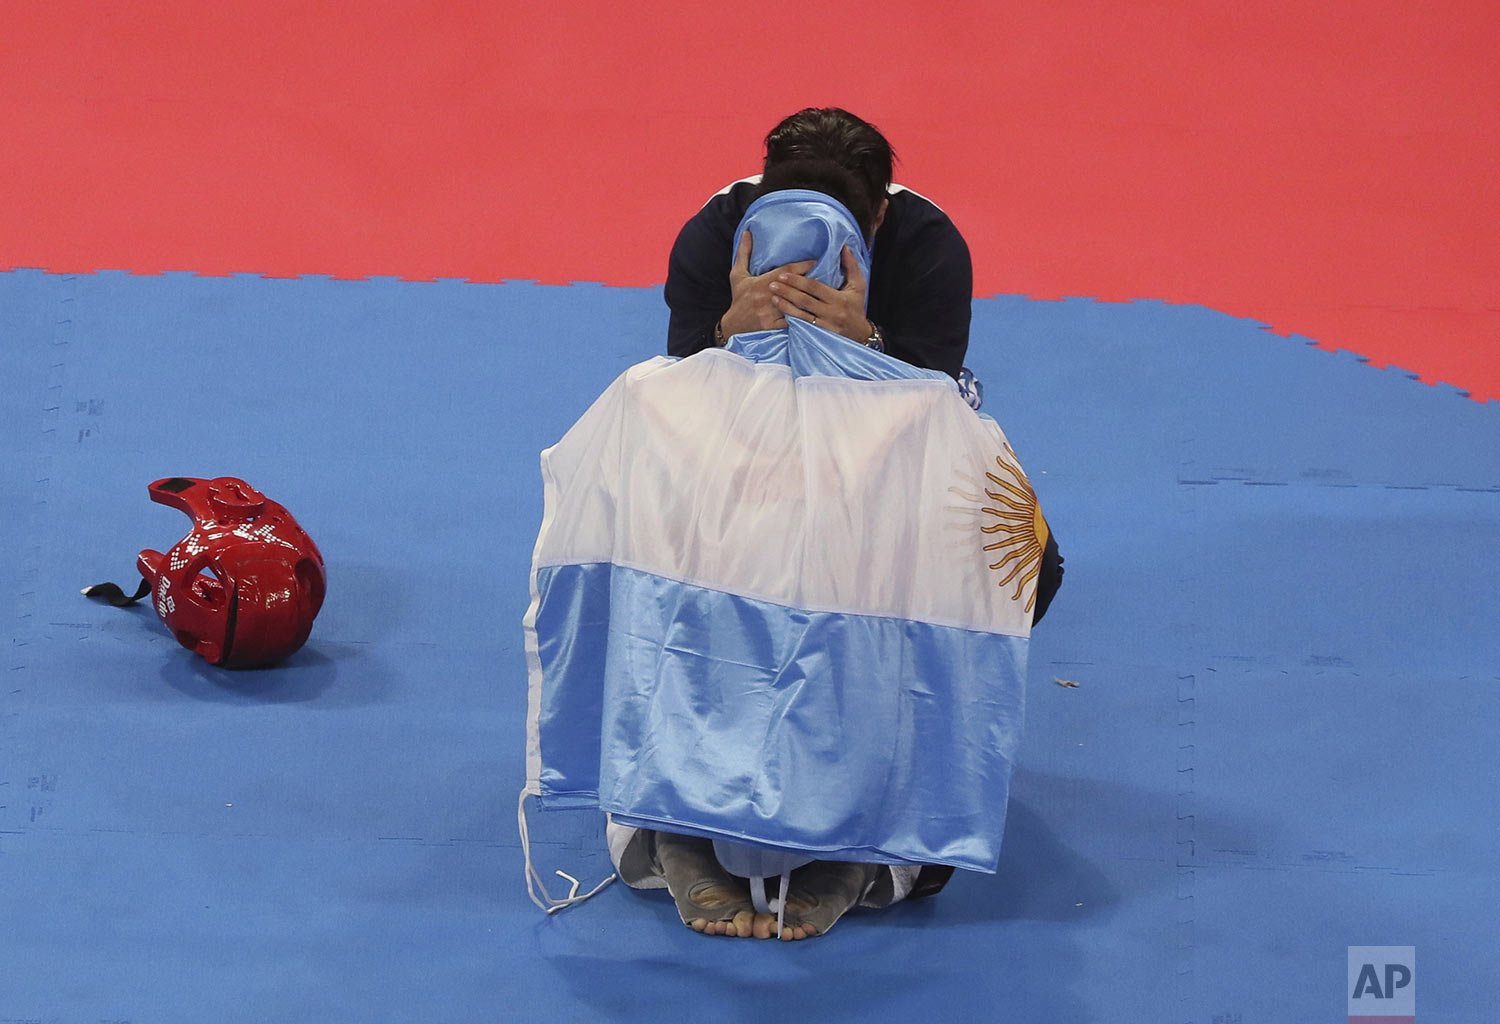 Argentina's Lucas Guzman is draped in his nation's flag as he's congratulated by his coach after winning the gold in the men's under 58kg Taekwondo event, after Guzman defeated Brandon Plaza, of Mexico, at the Pan American Games in Lima, Peru, Saturday, July 27, 2019. (AP Photo/Fernando Llano)